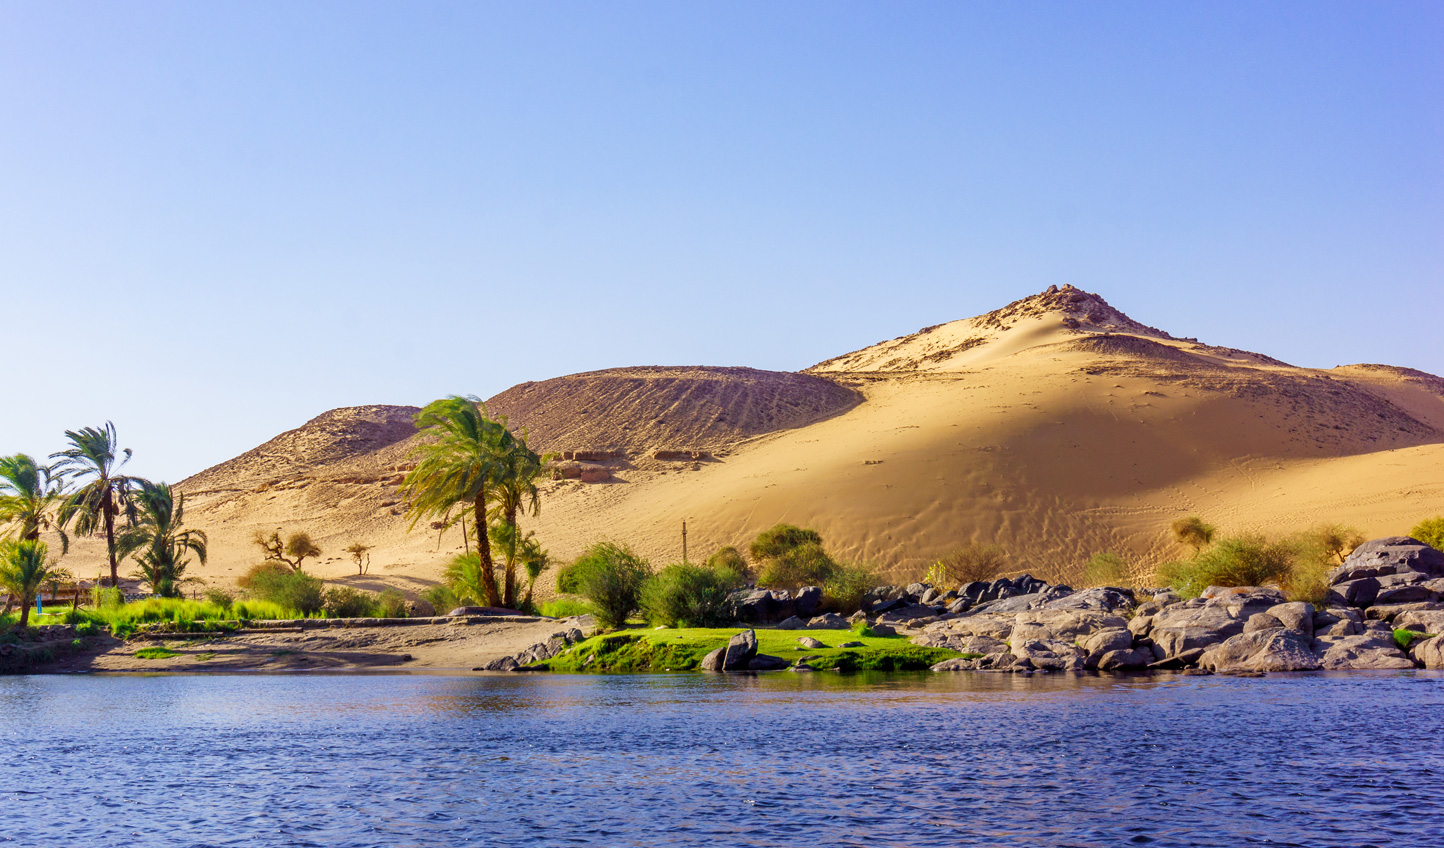 Where rolling dunes fall away into the waters of the Nile